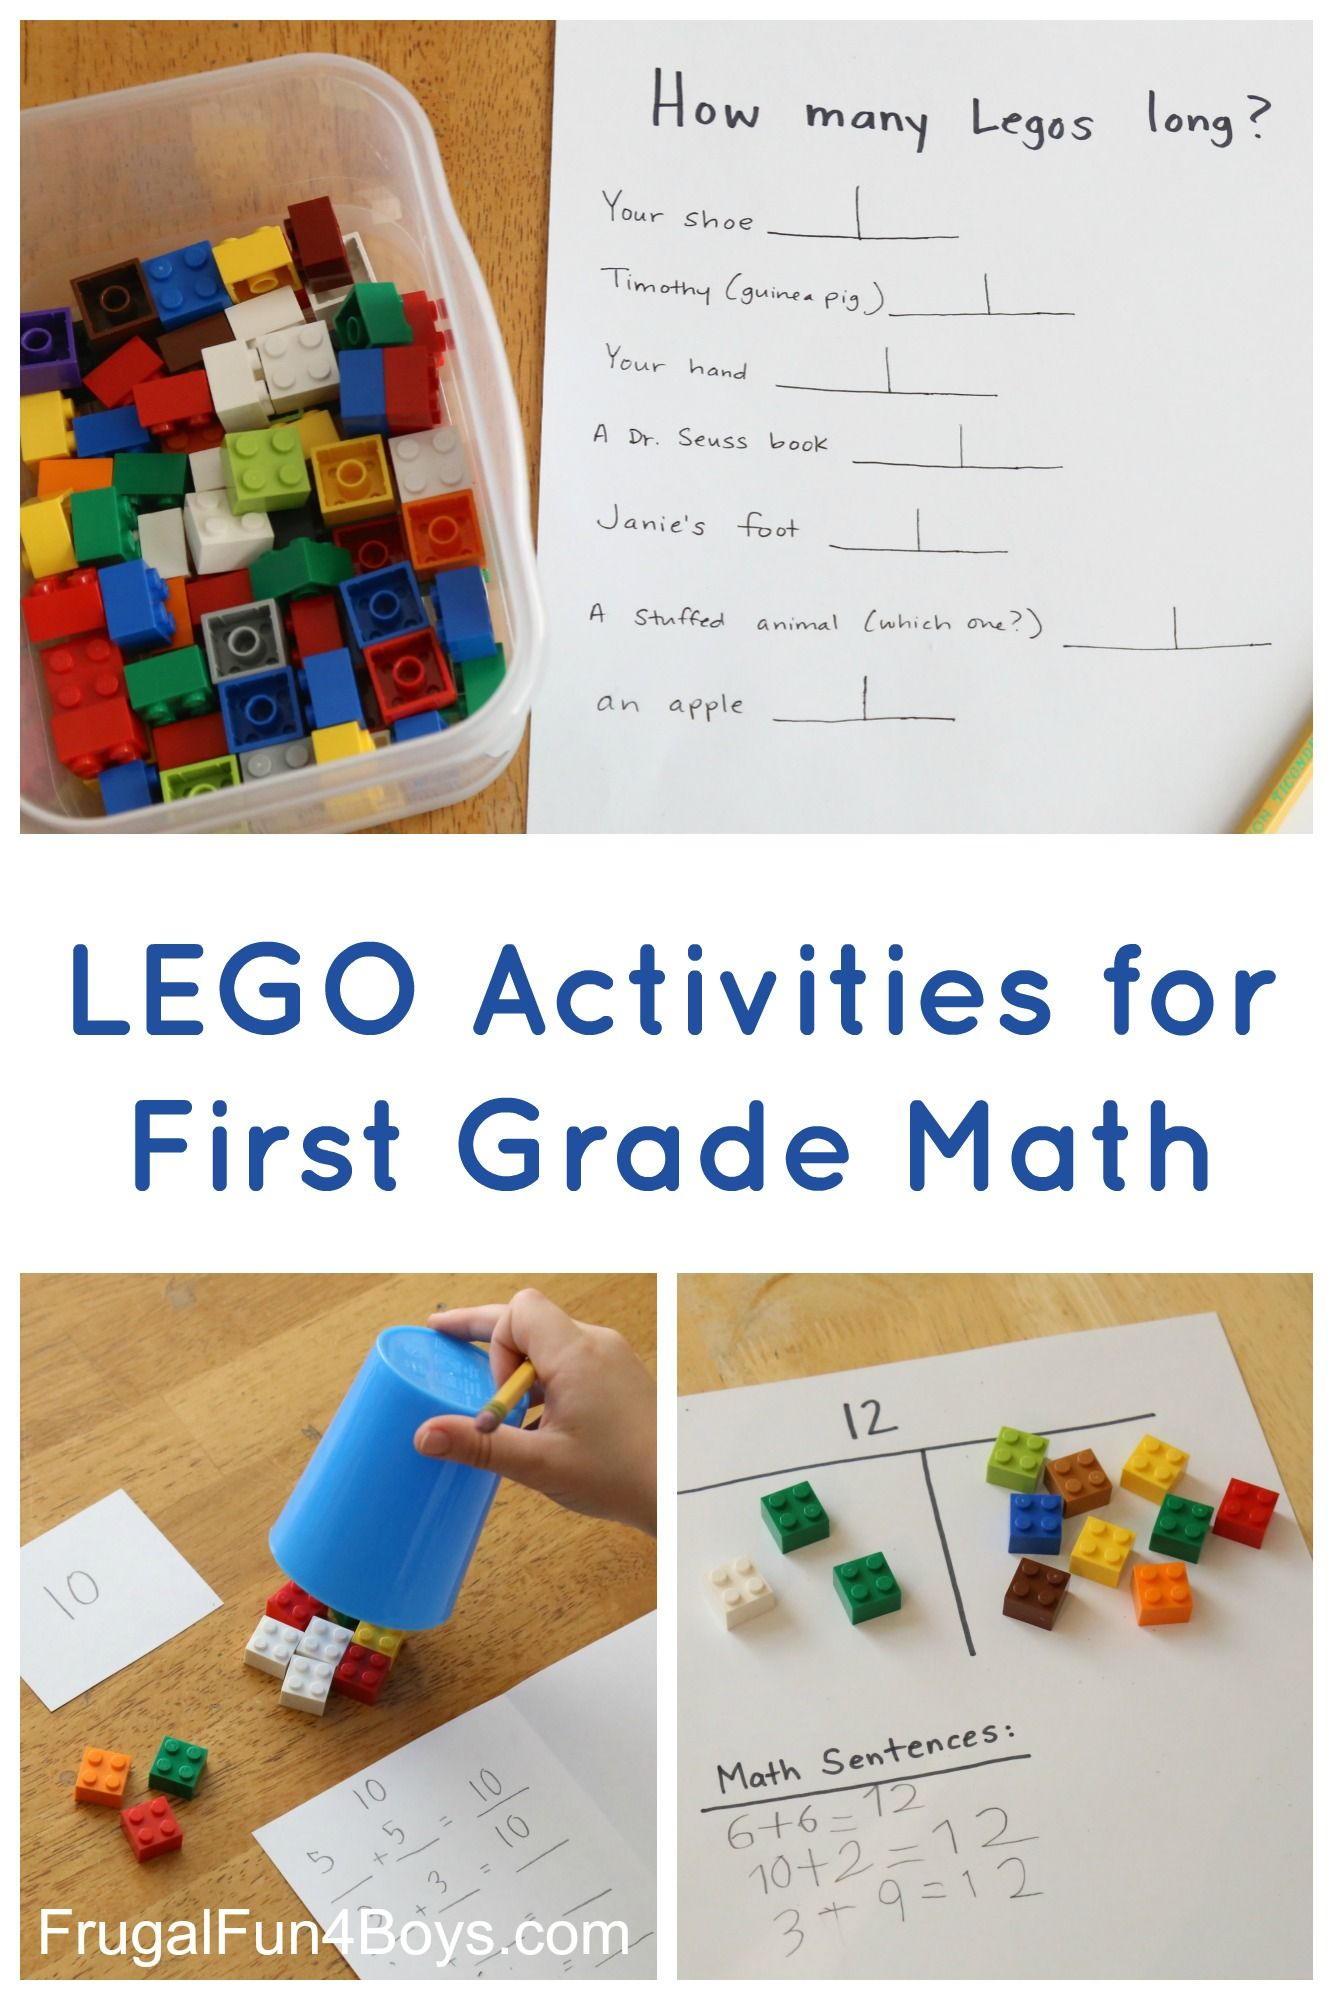 LEGO Activities for First Grade Math | Frugal Fun for Boys ...